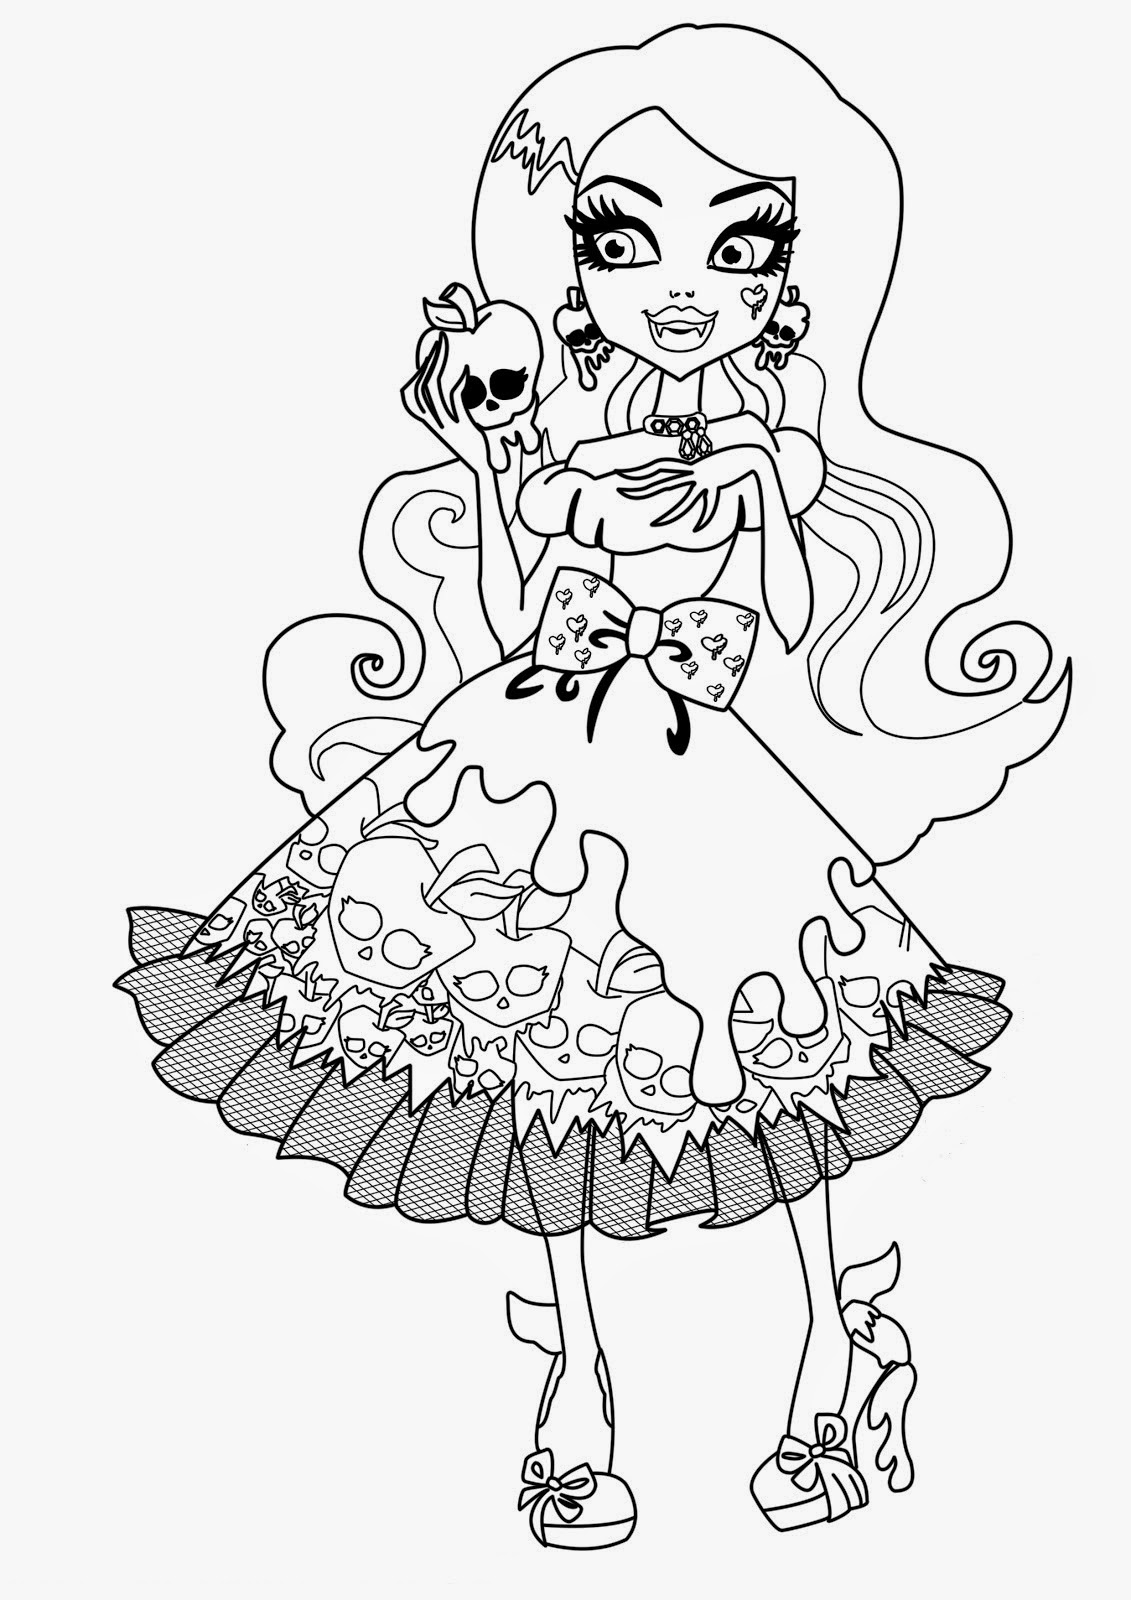 monster high free printable coloring pages monster high coloring pages for kids printable free pages printable free coloring high monster